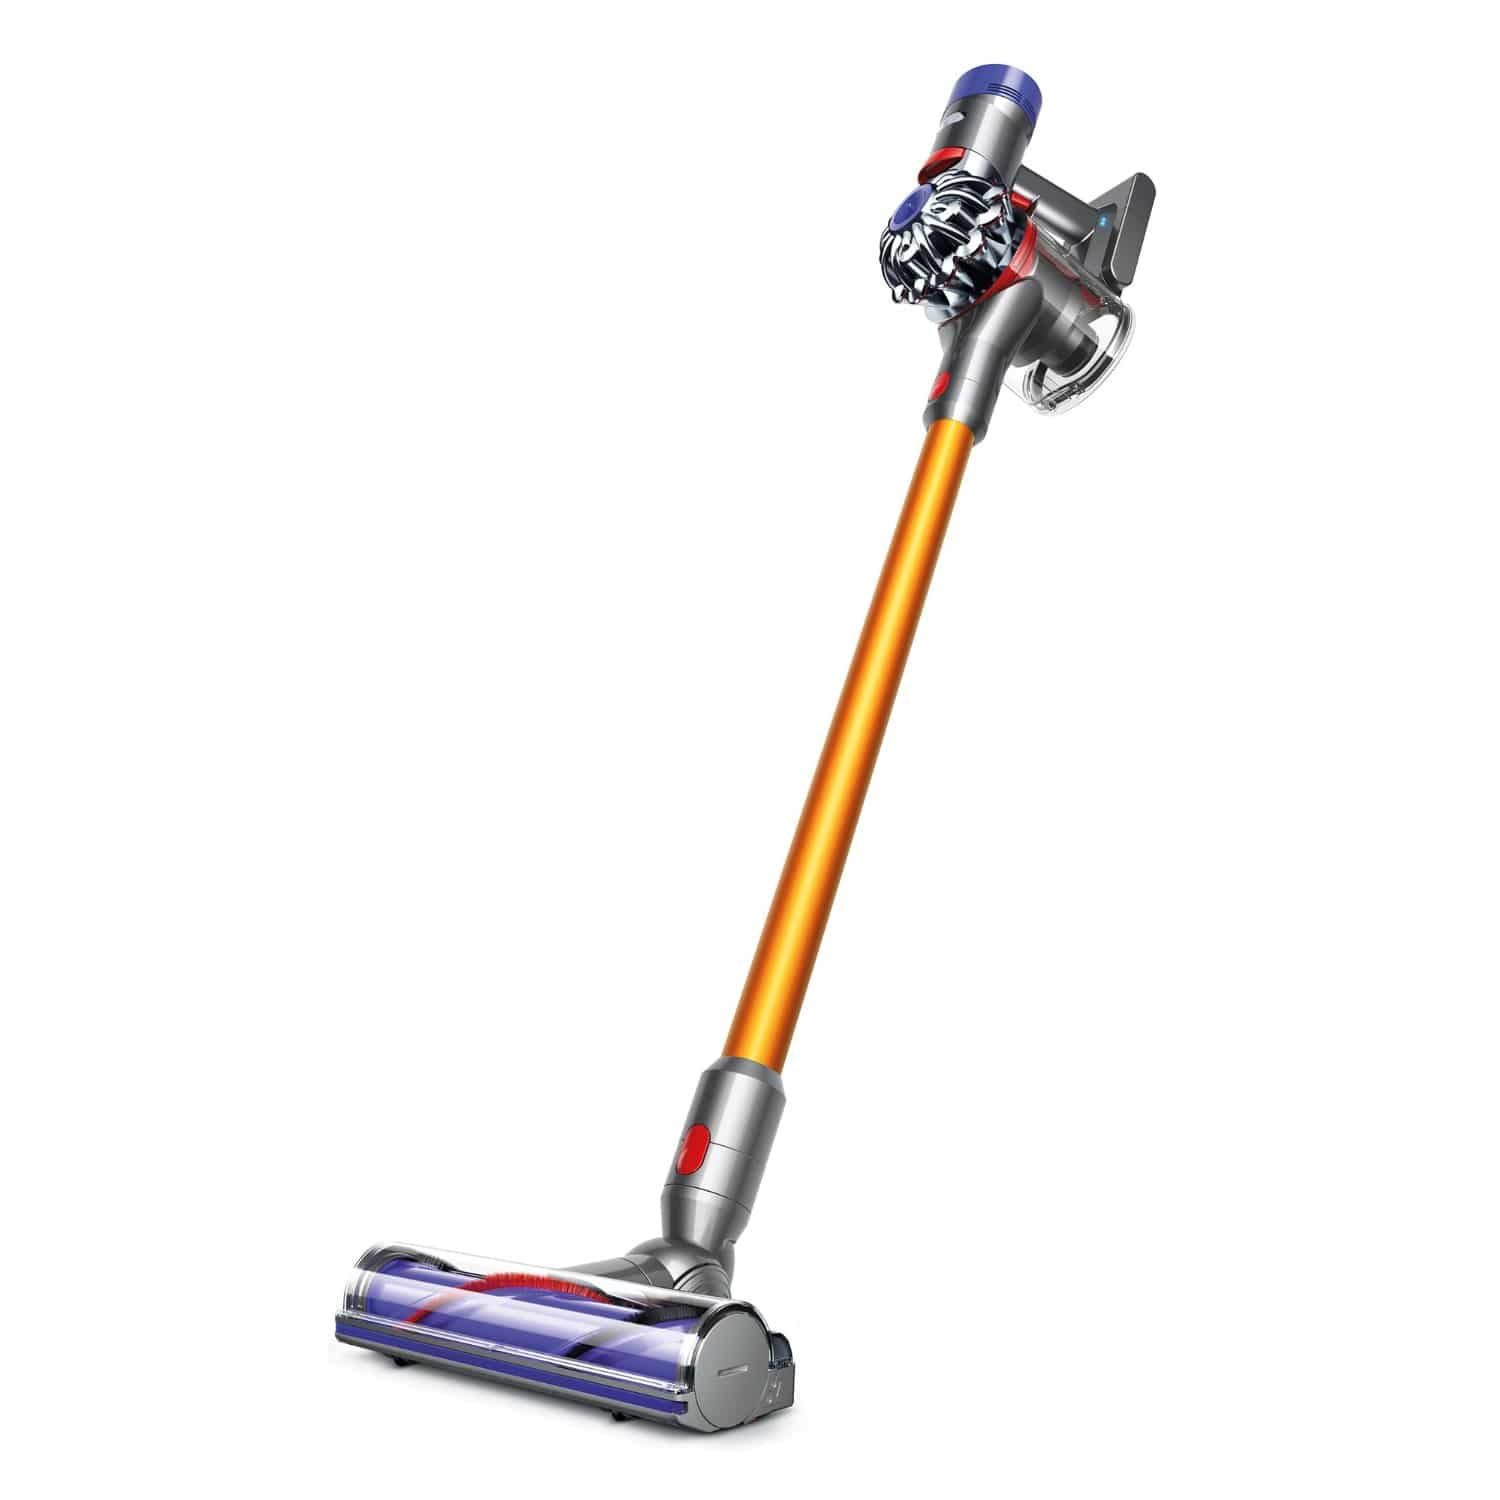 dyson-v8-absolute-cordless